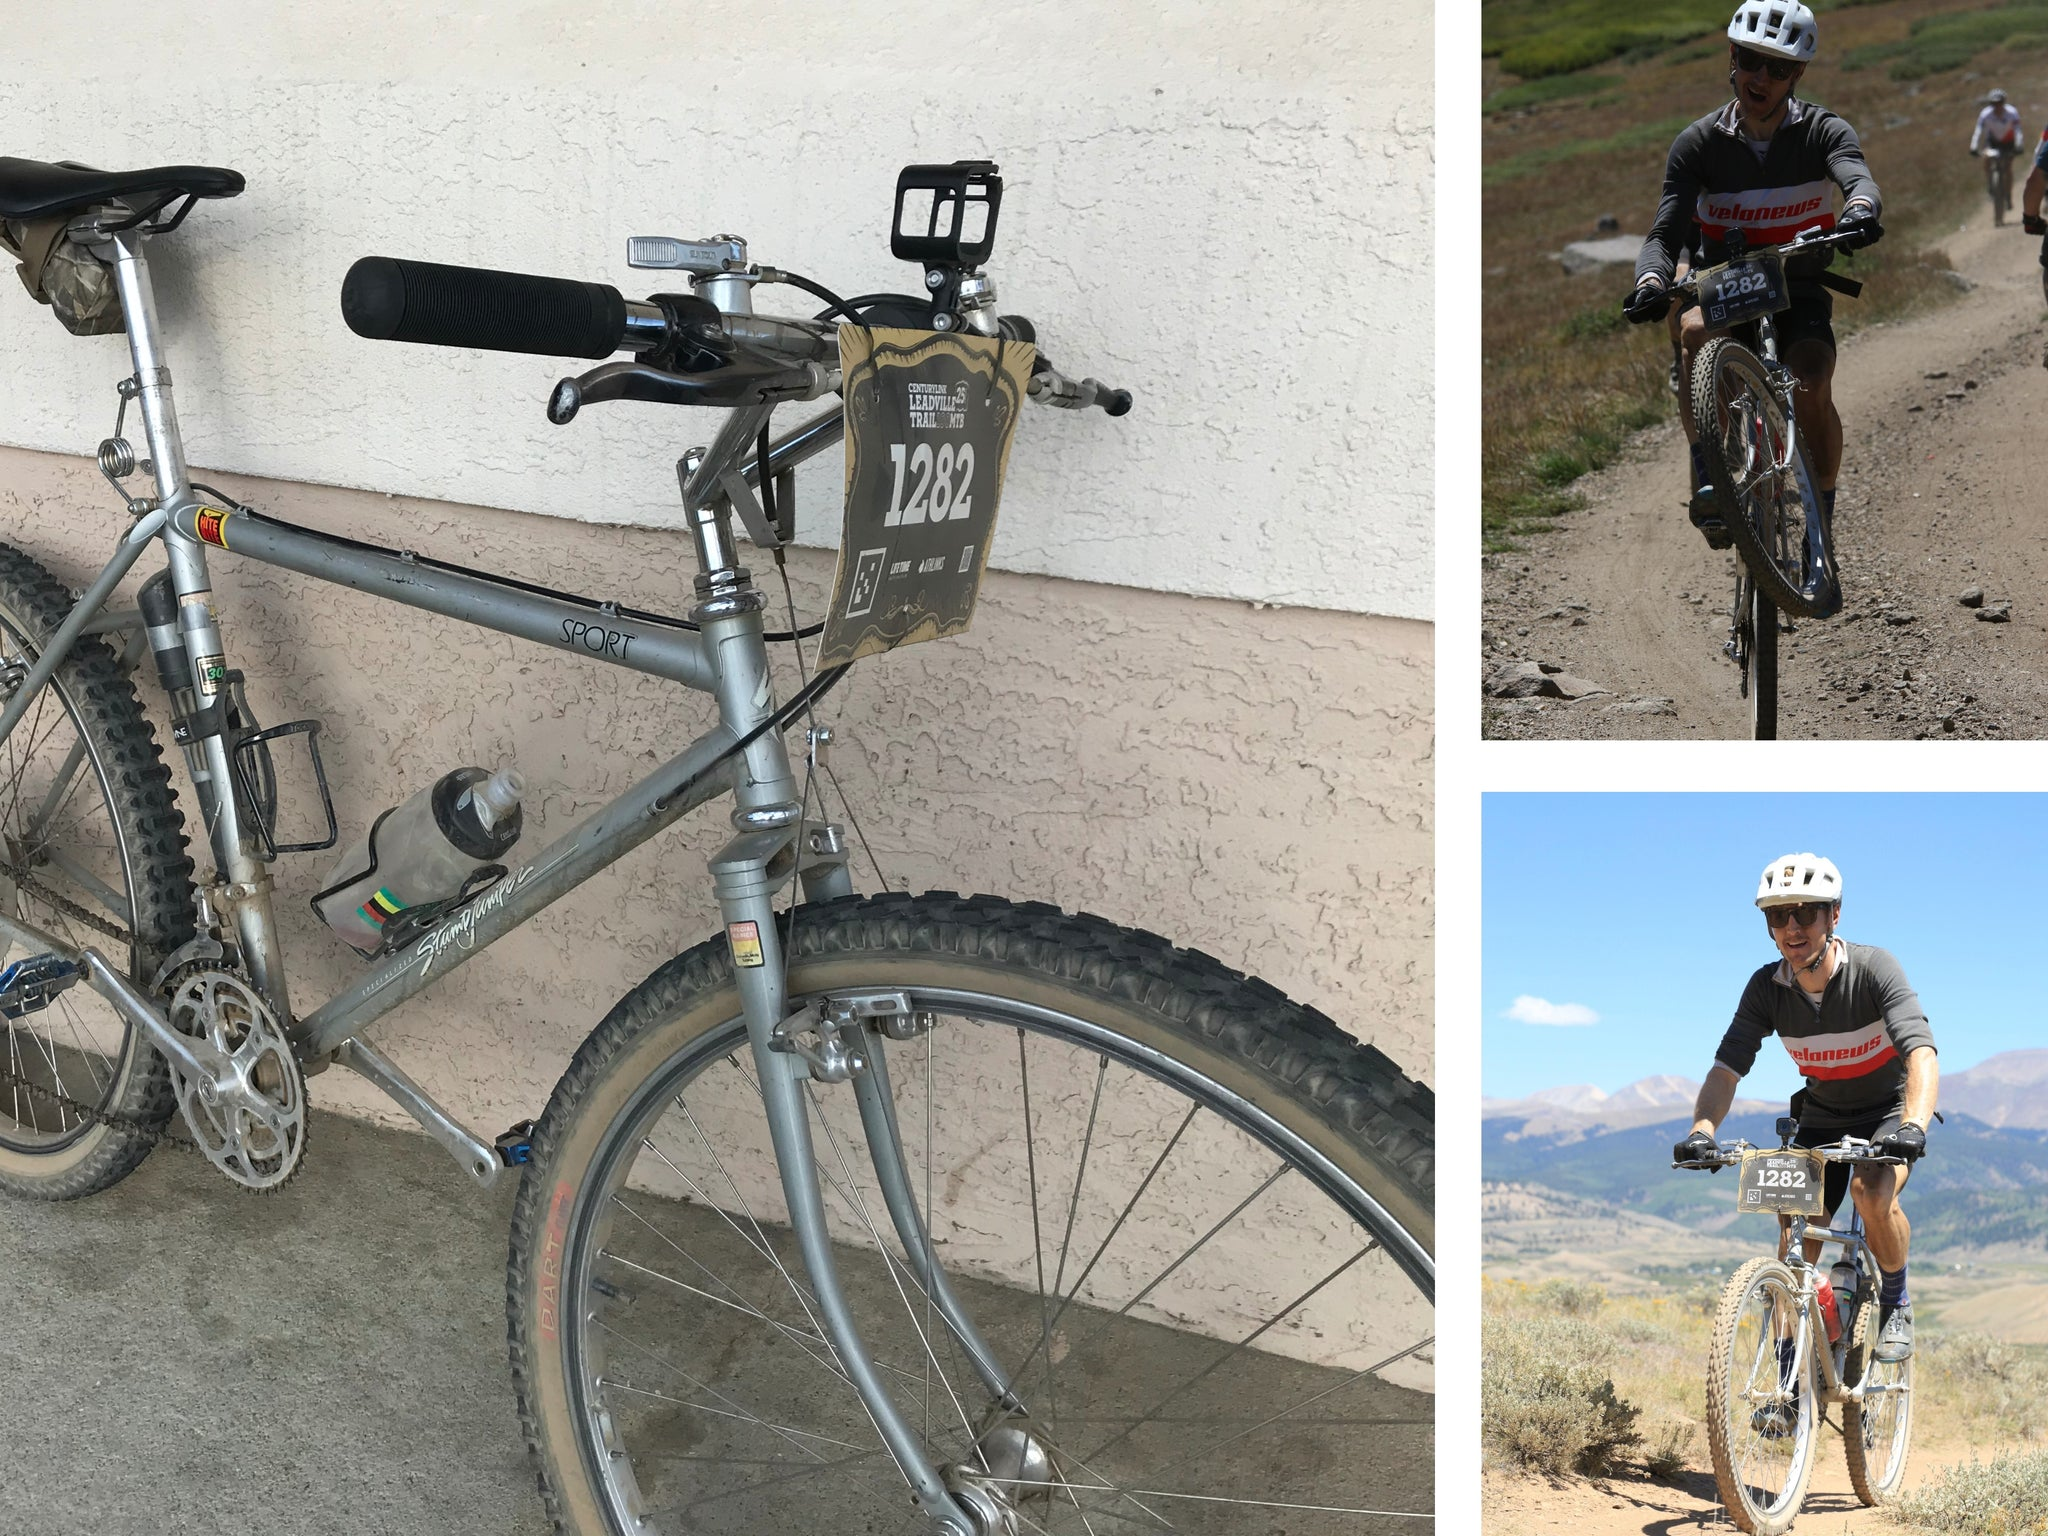 Used Vintage 1983 Specialized Stumpjumper Sport Mountain bike